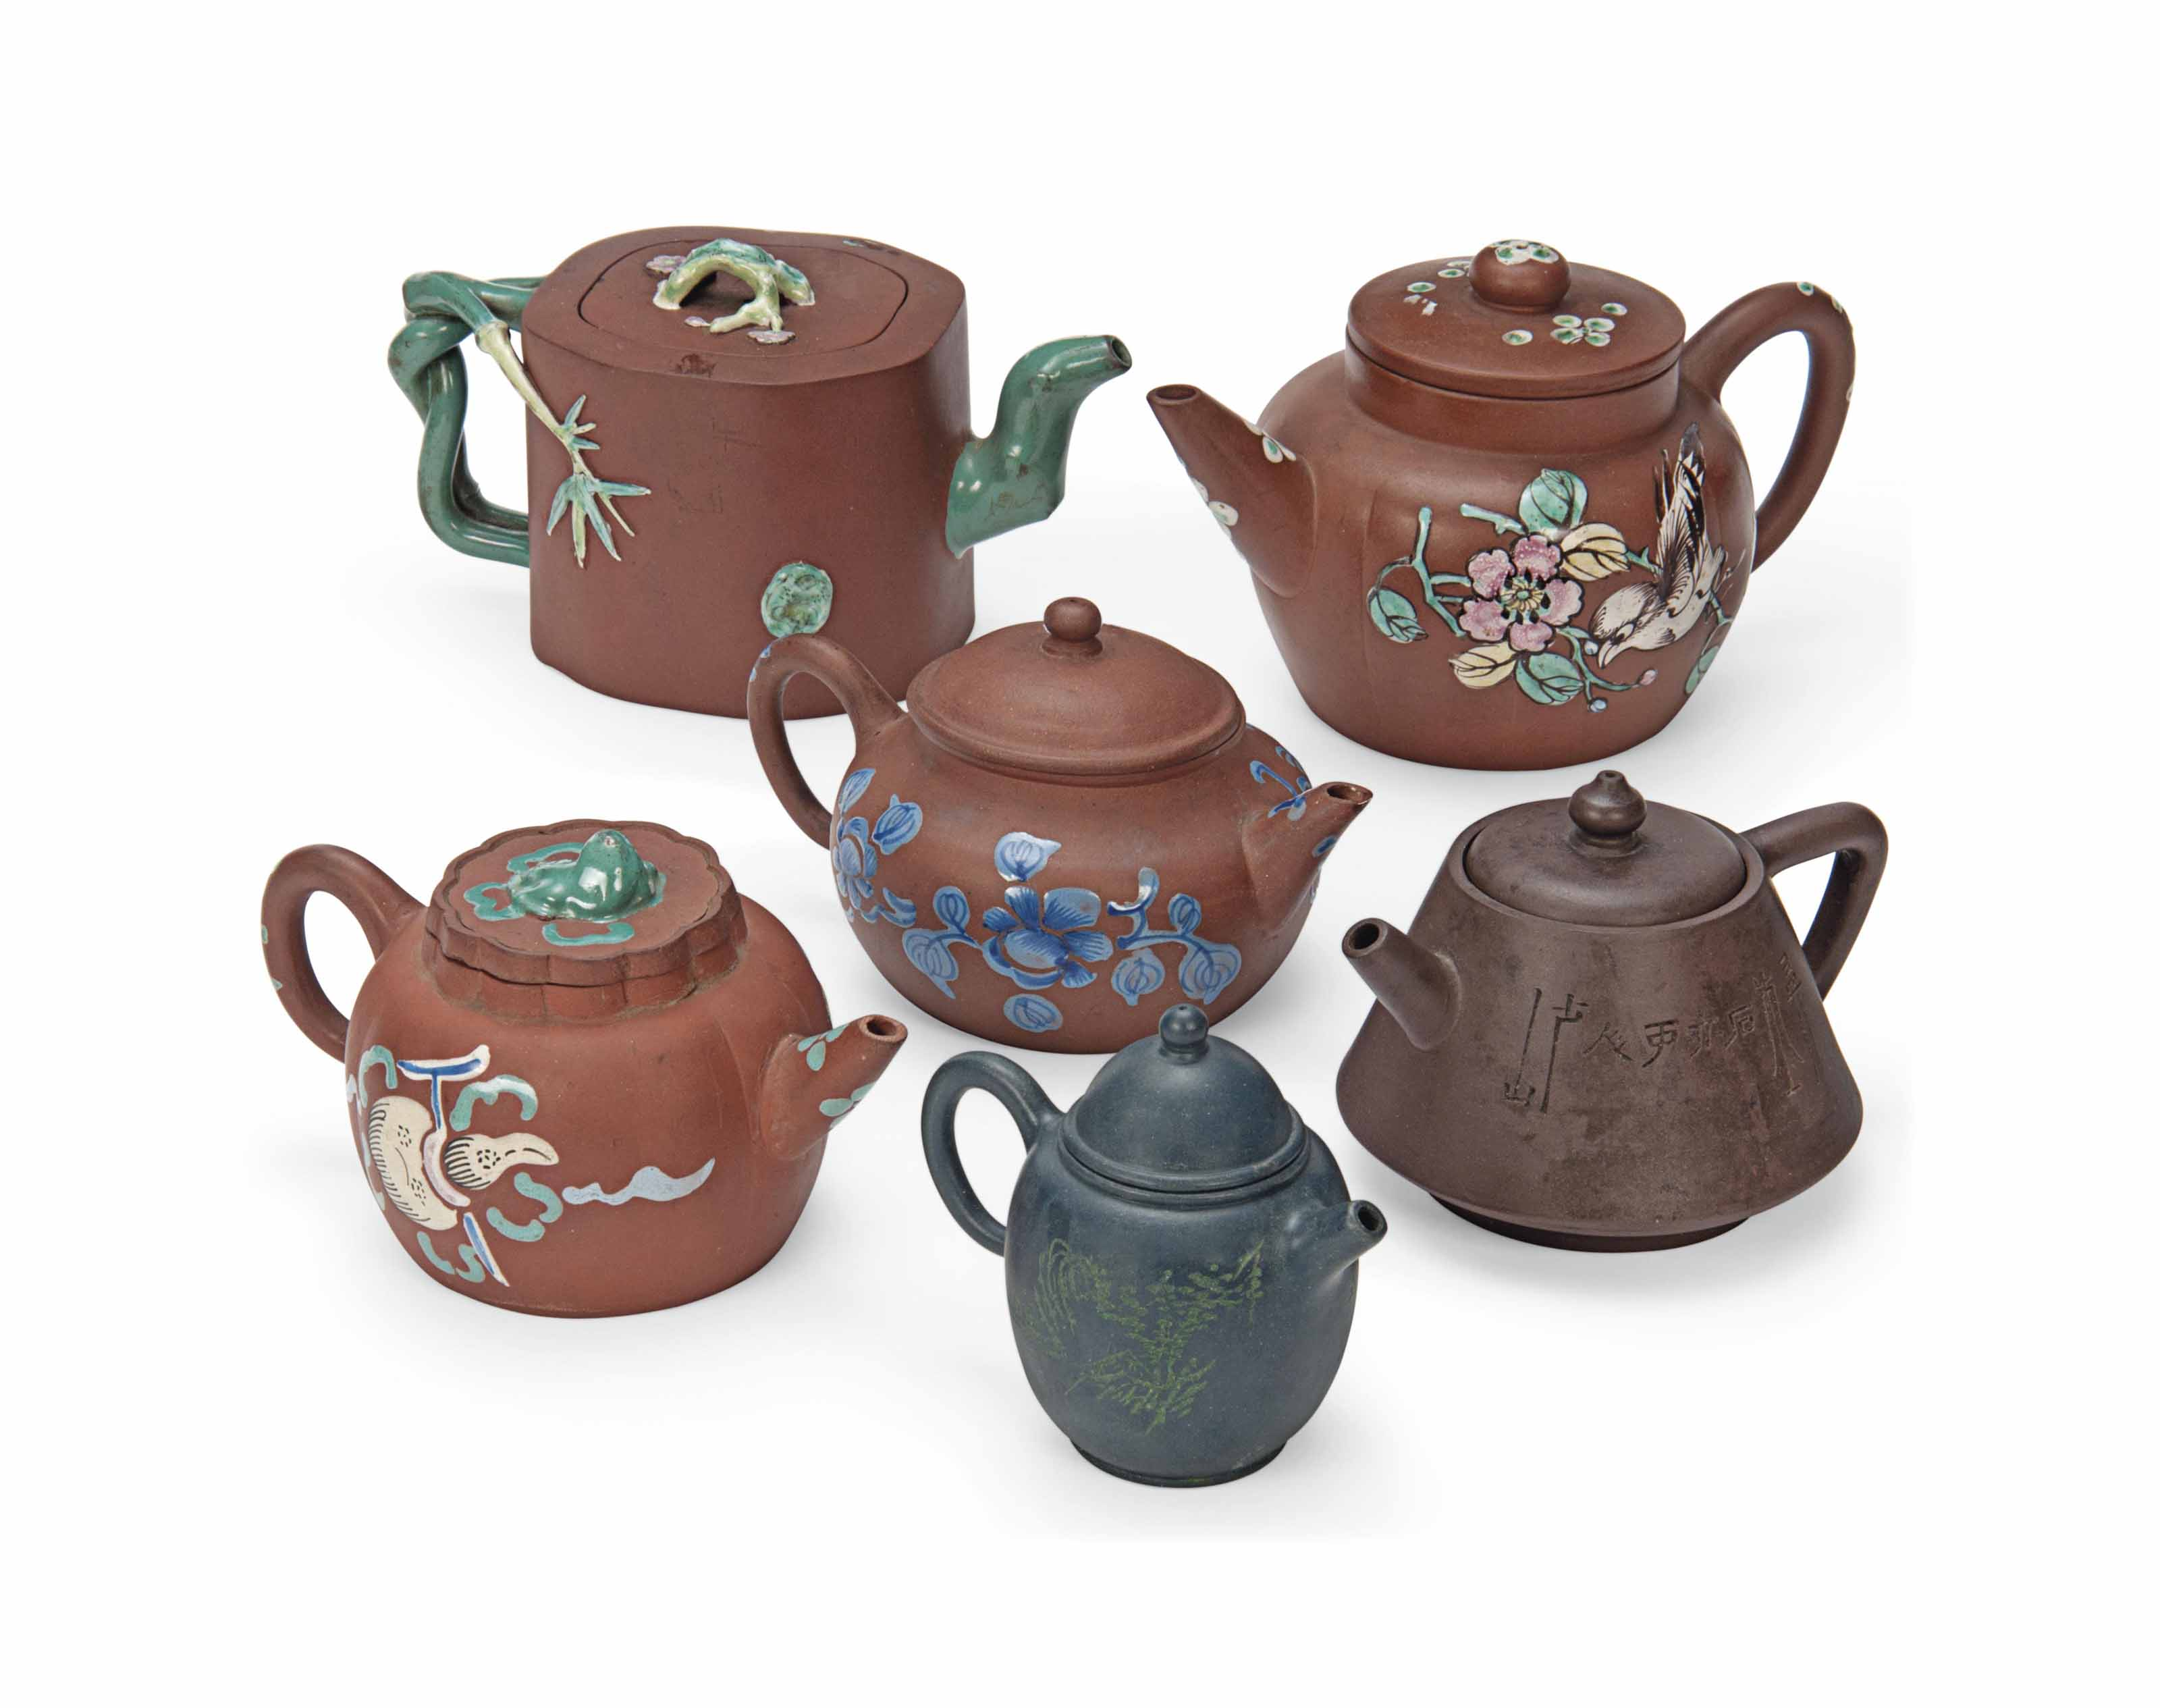 SIX CHINESE YIXING TEAPOTS